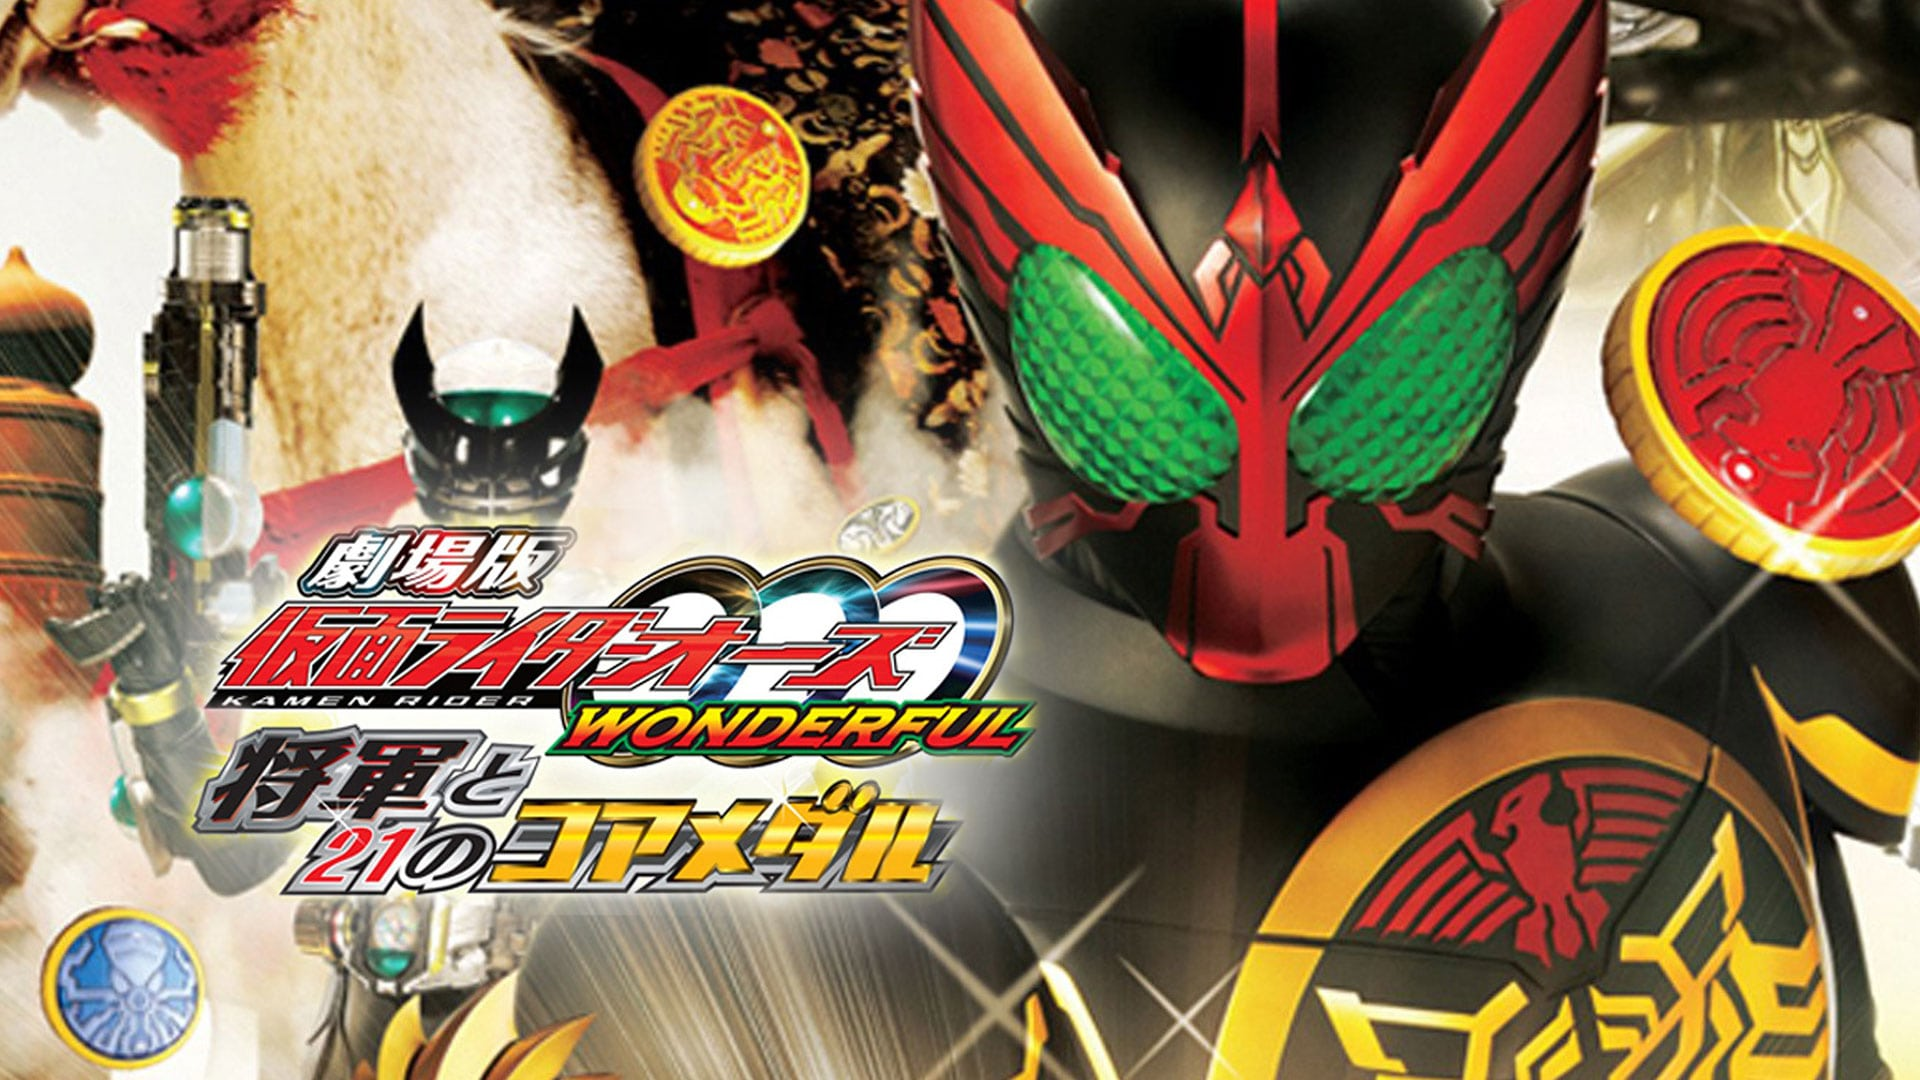 Kamen Rider Ooo Wonderful The Shogun And The 21 Core Medals 1